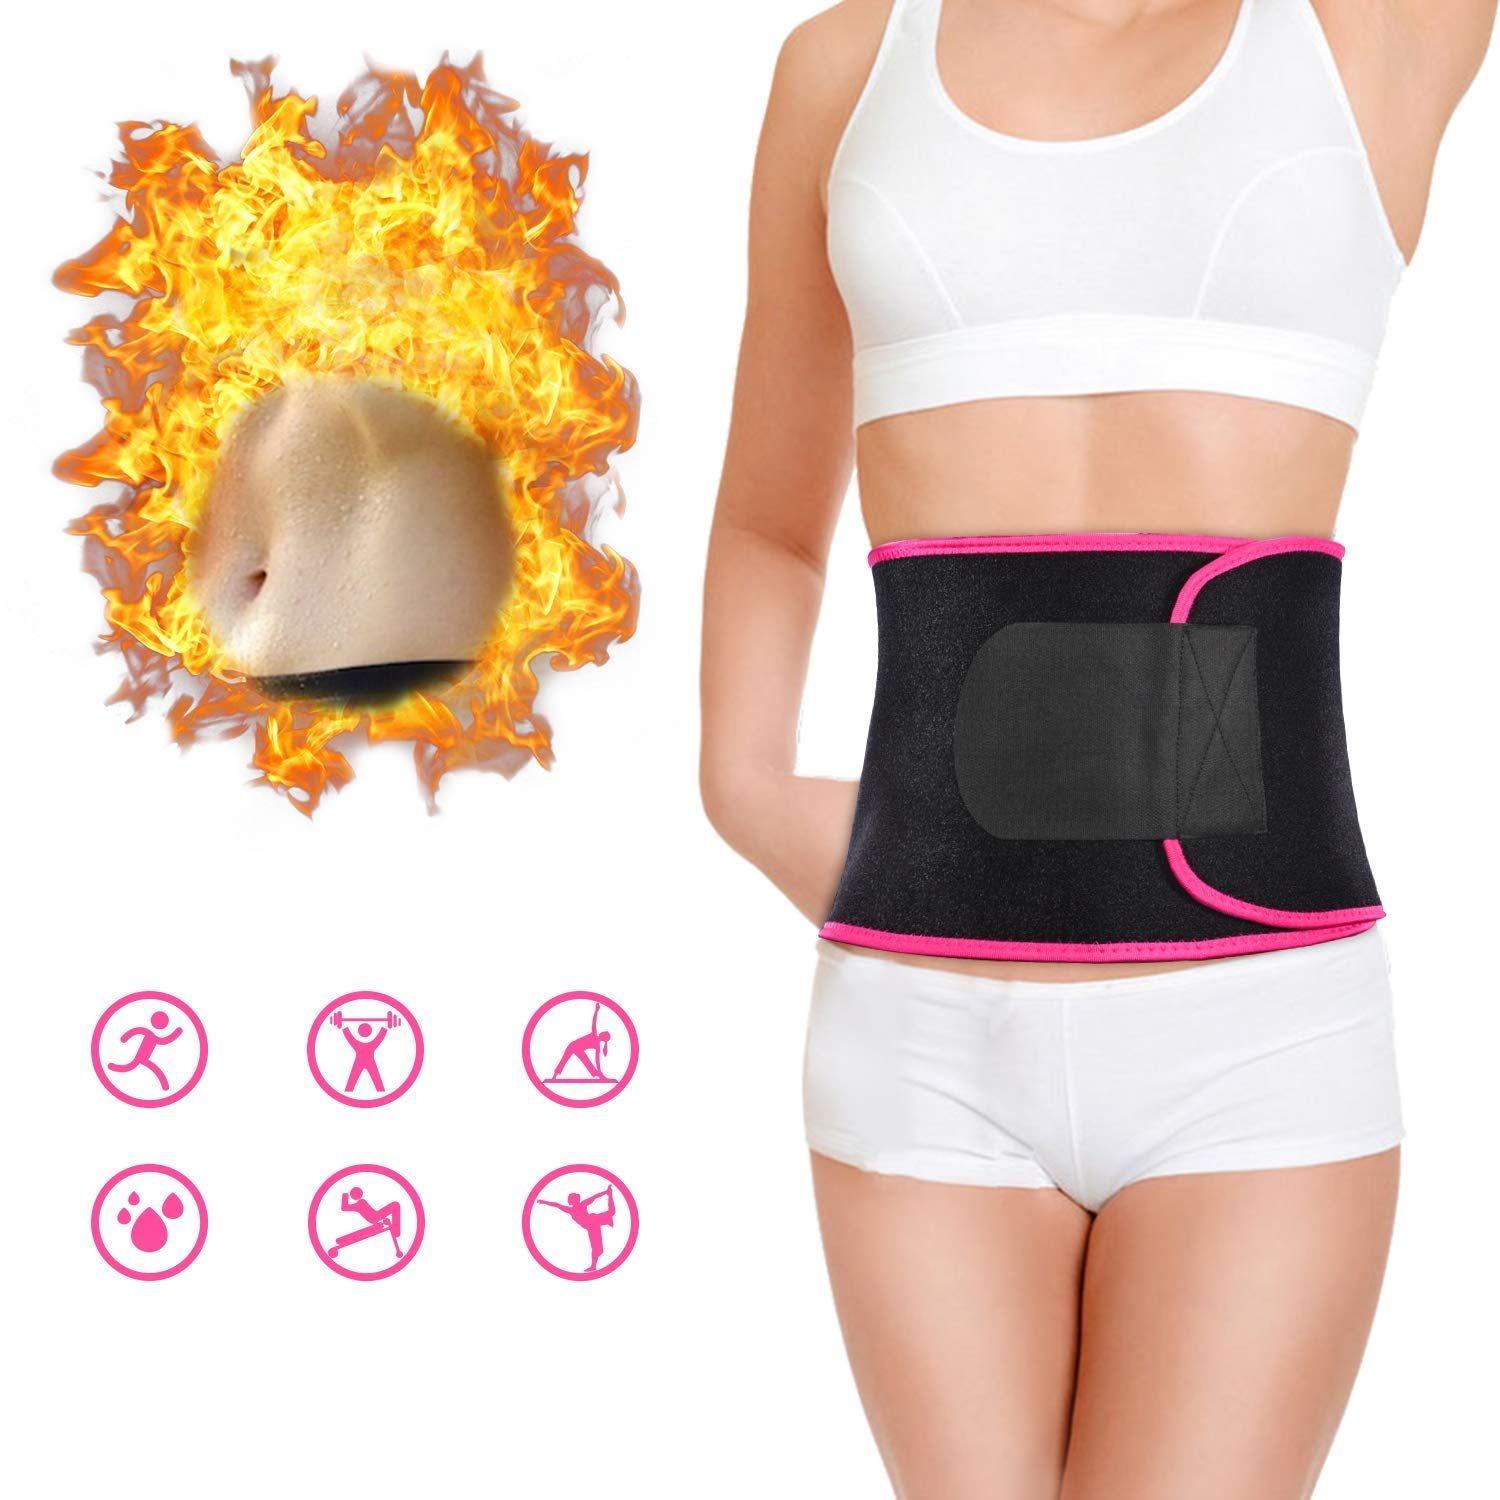 Ramheart Waist Trimmer Belt Exercise Fitness Waist Belt Workout Sweat Enhancer Exercise Adjustable Wrap Enjoy Sweet Abdominal Muscle & Back Support Burn Calories Increase Metabolism, Pink